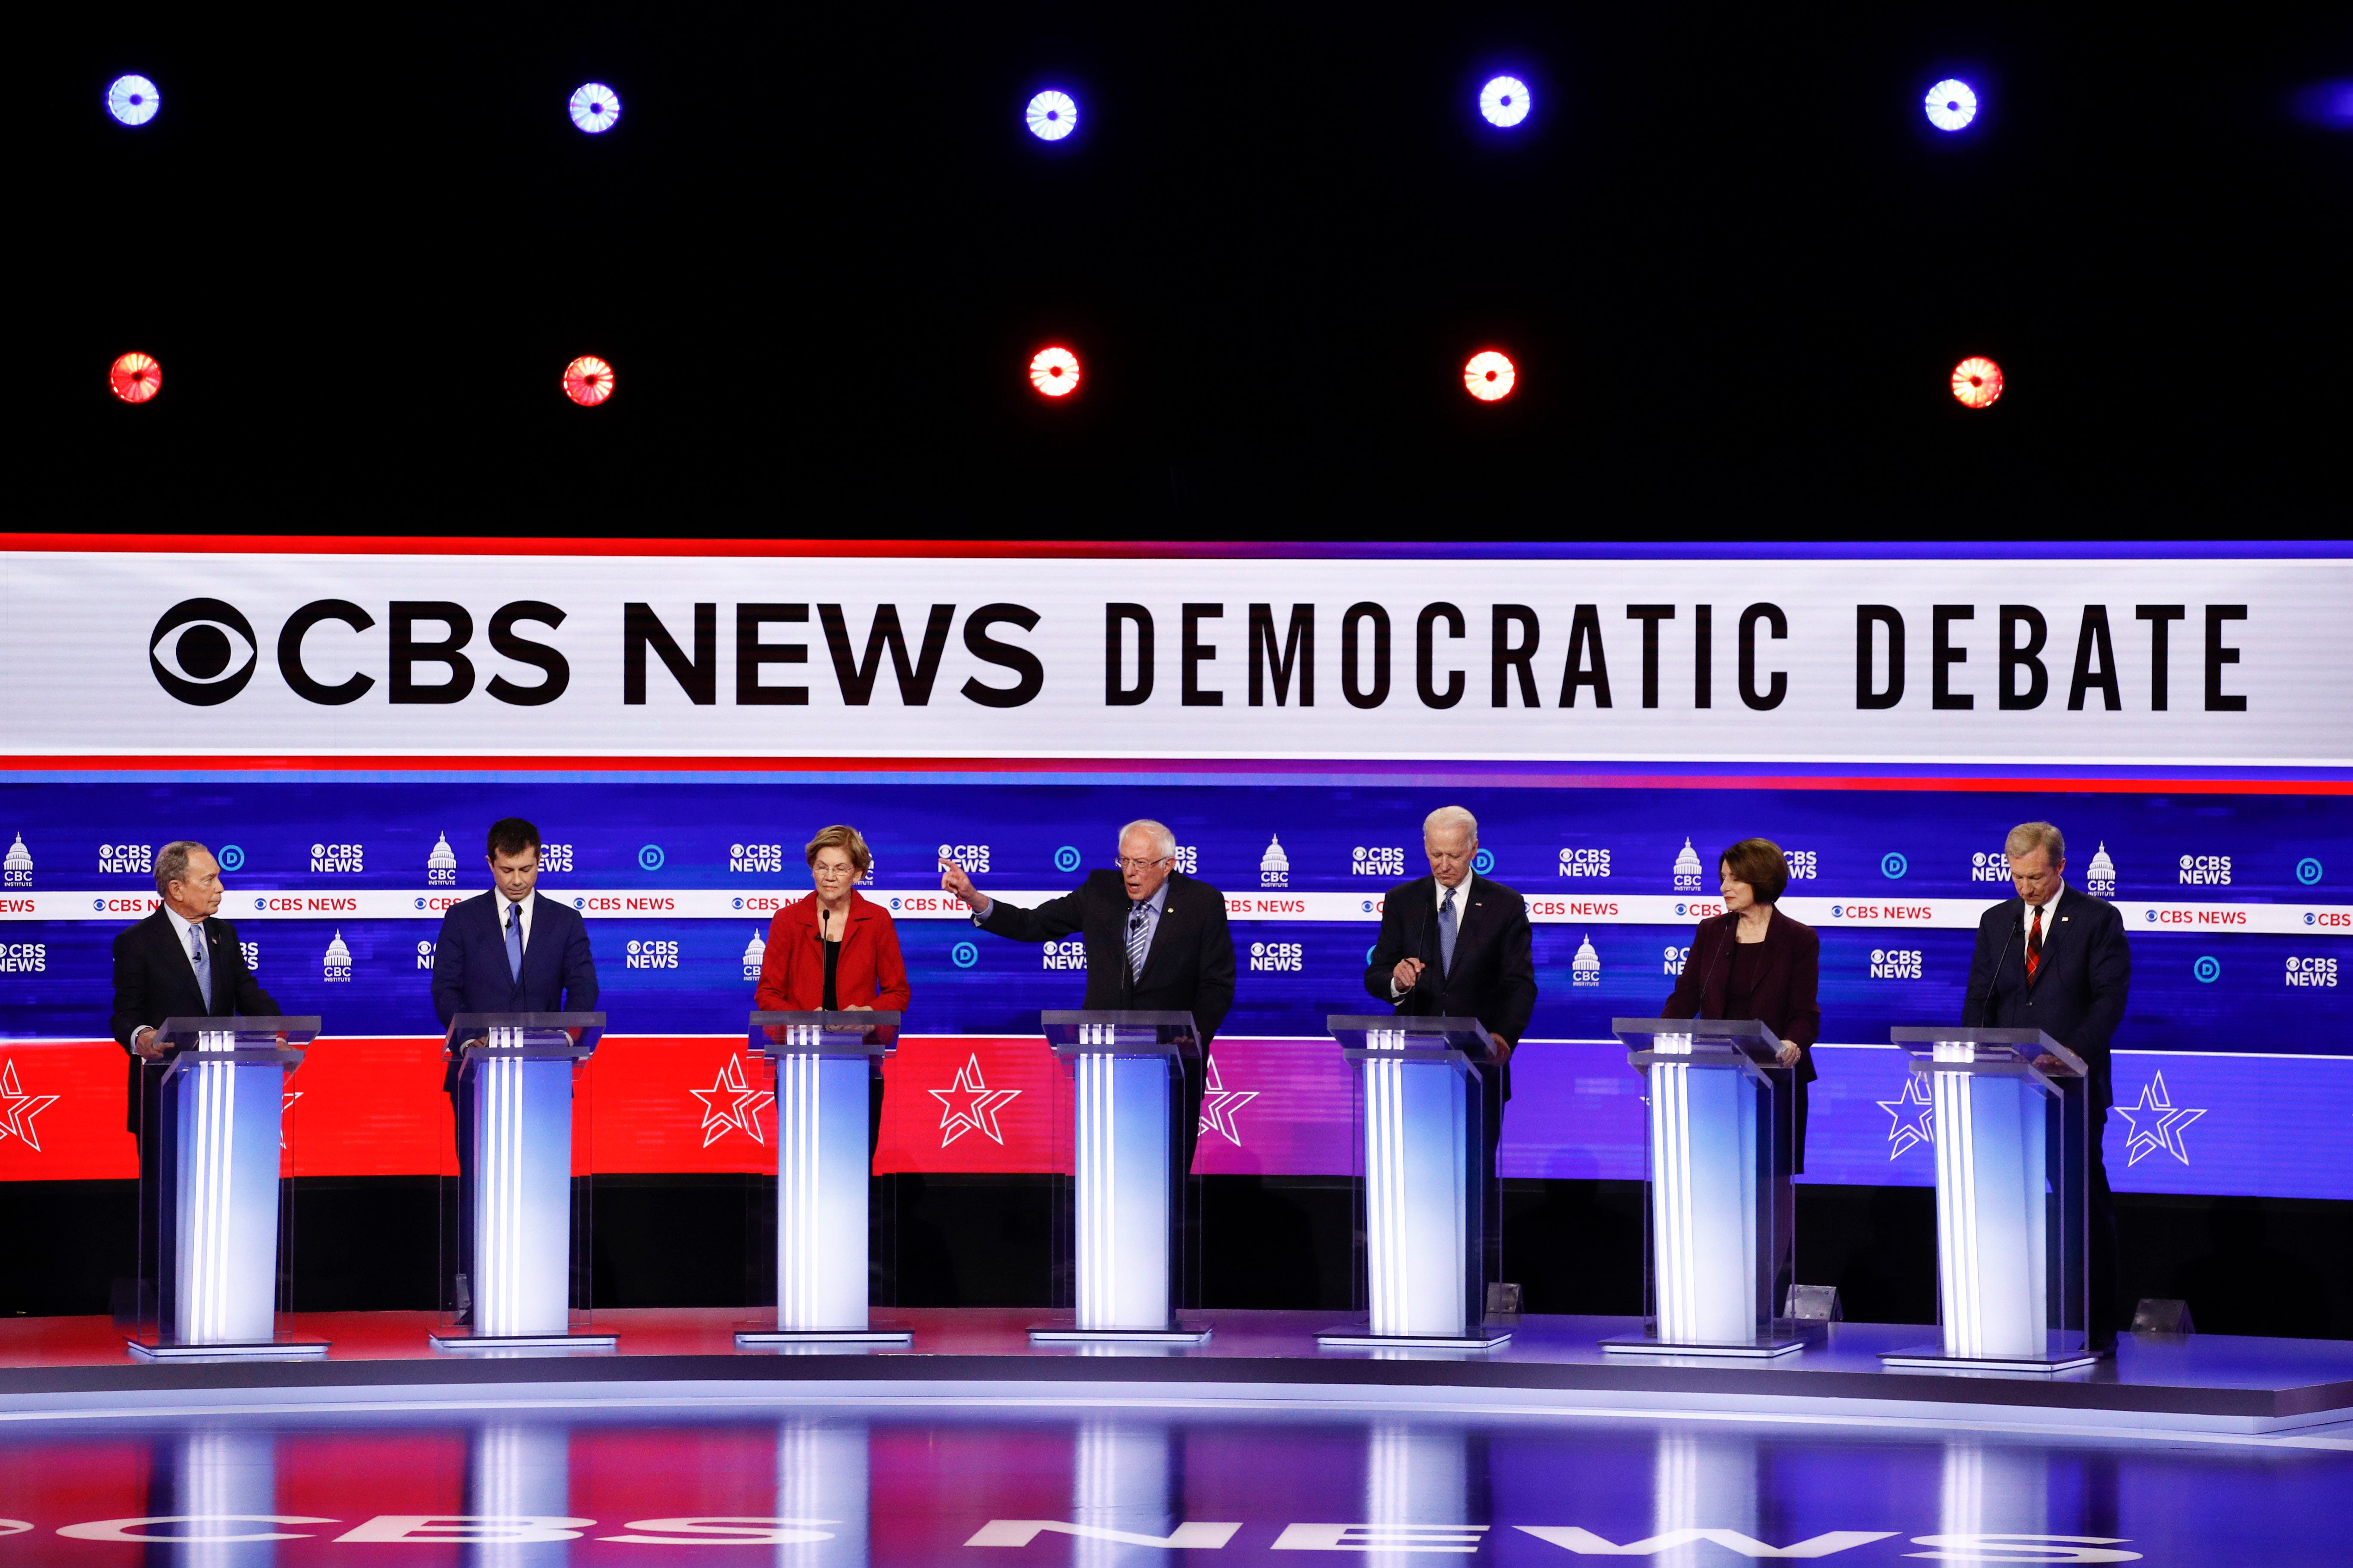 Democratic debate kicks off with questions of who Russia wants for president  - updates